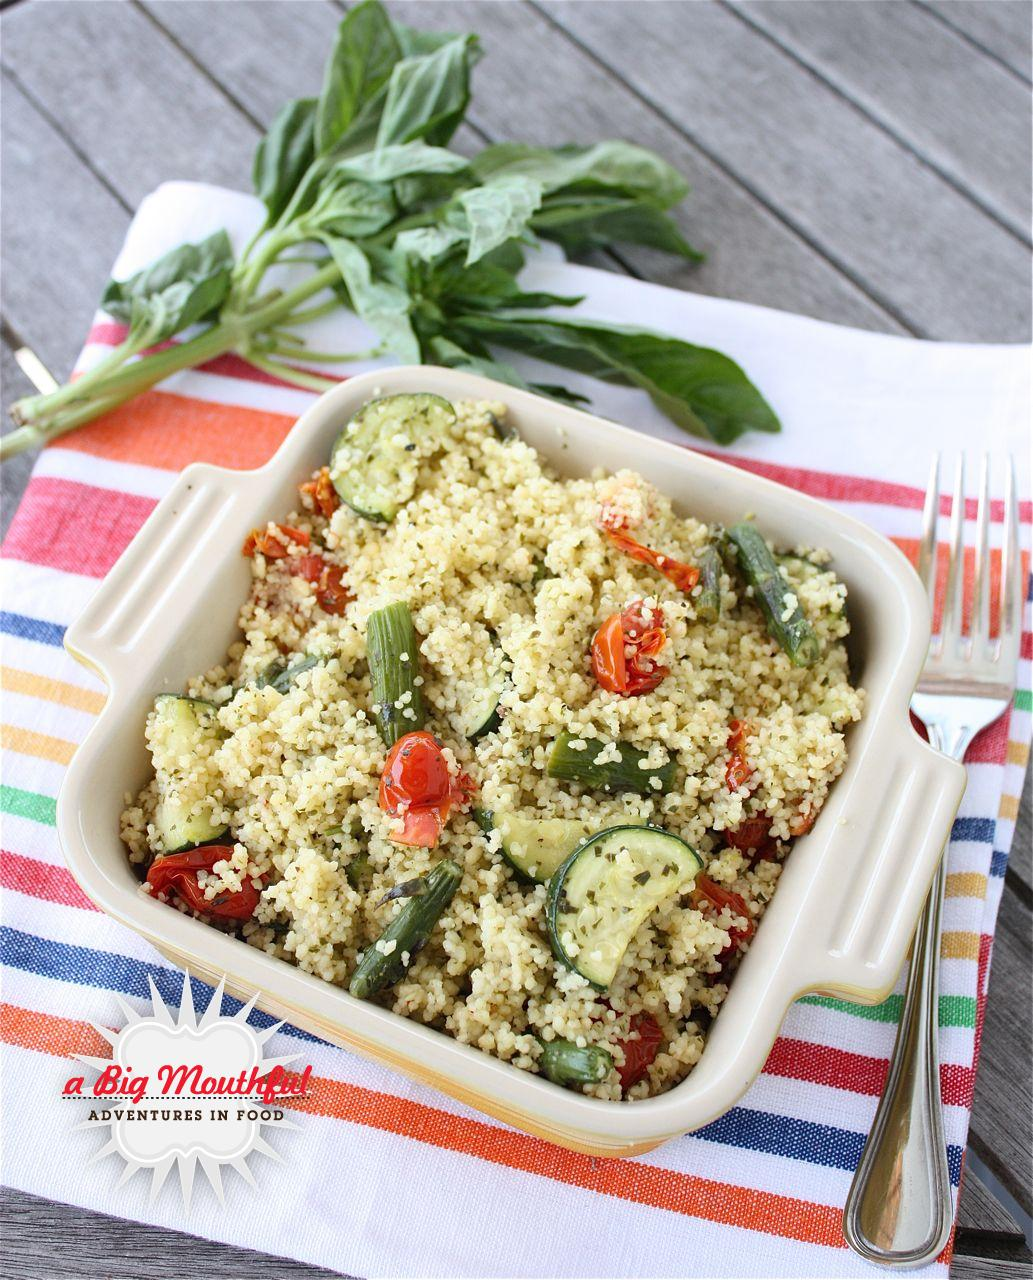 Roasted Tomato, Asparagus and Zucchini Couscous with Lemon Basil Dressing